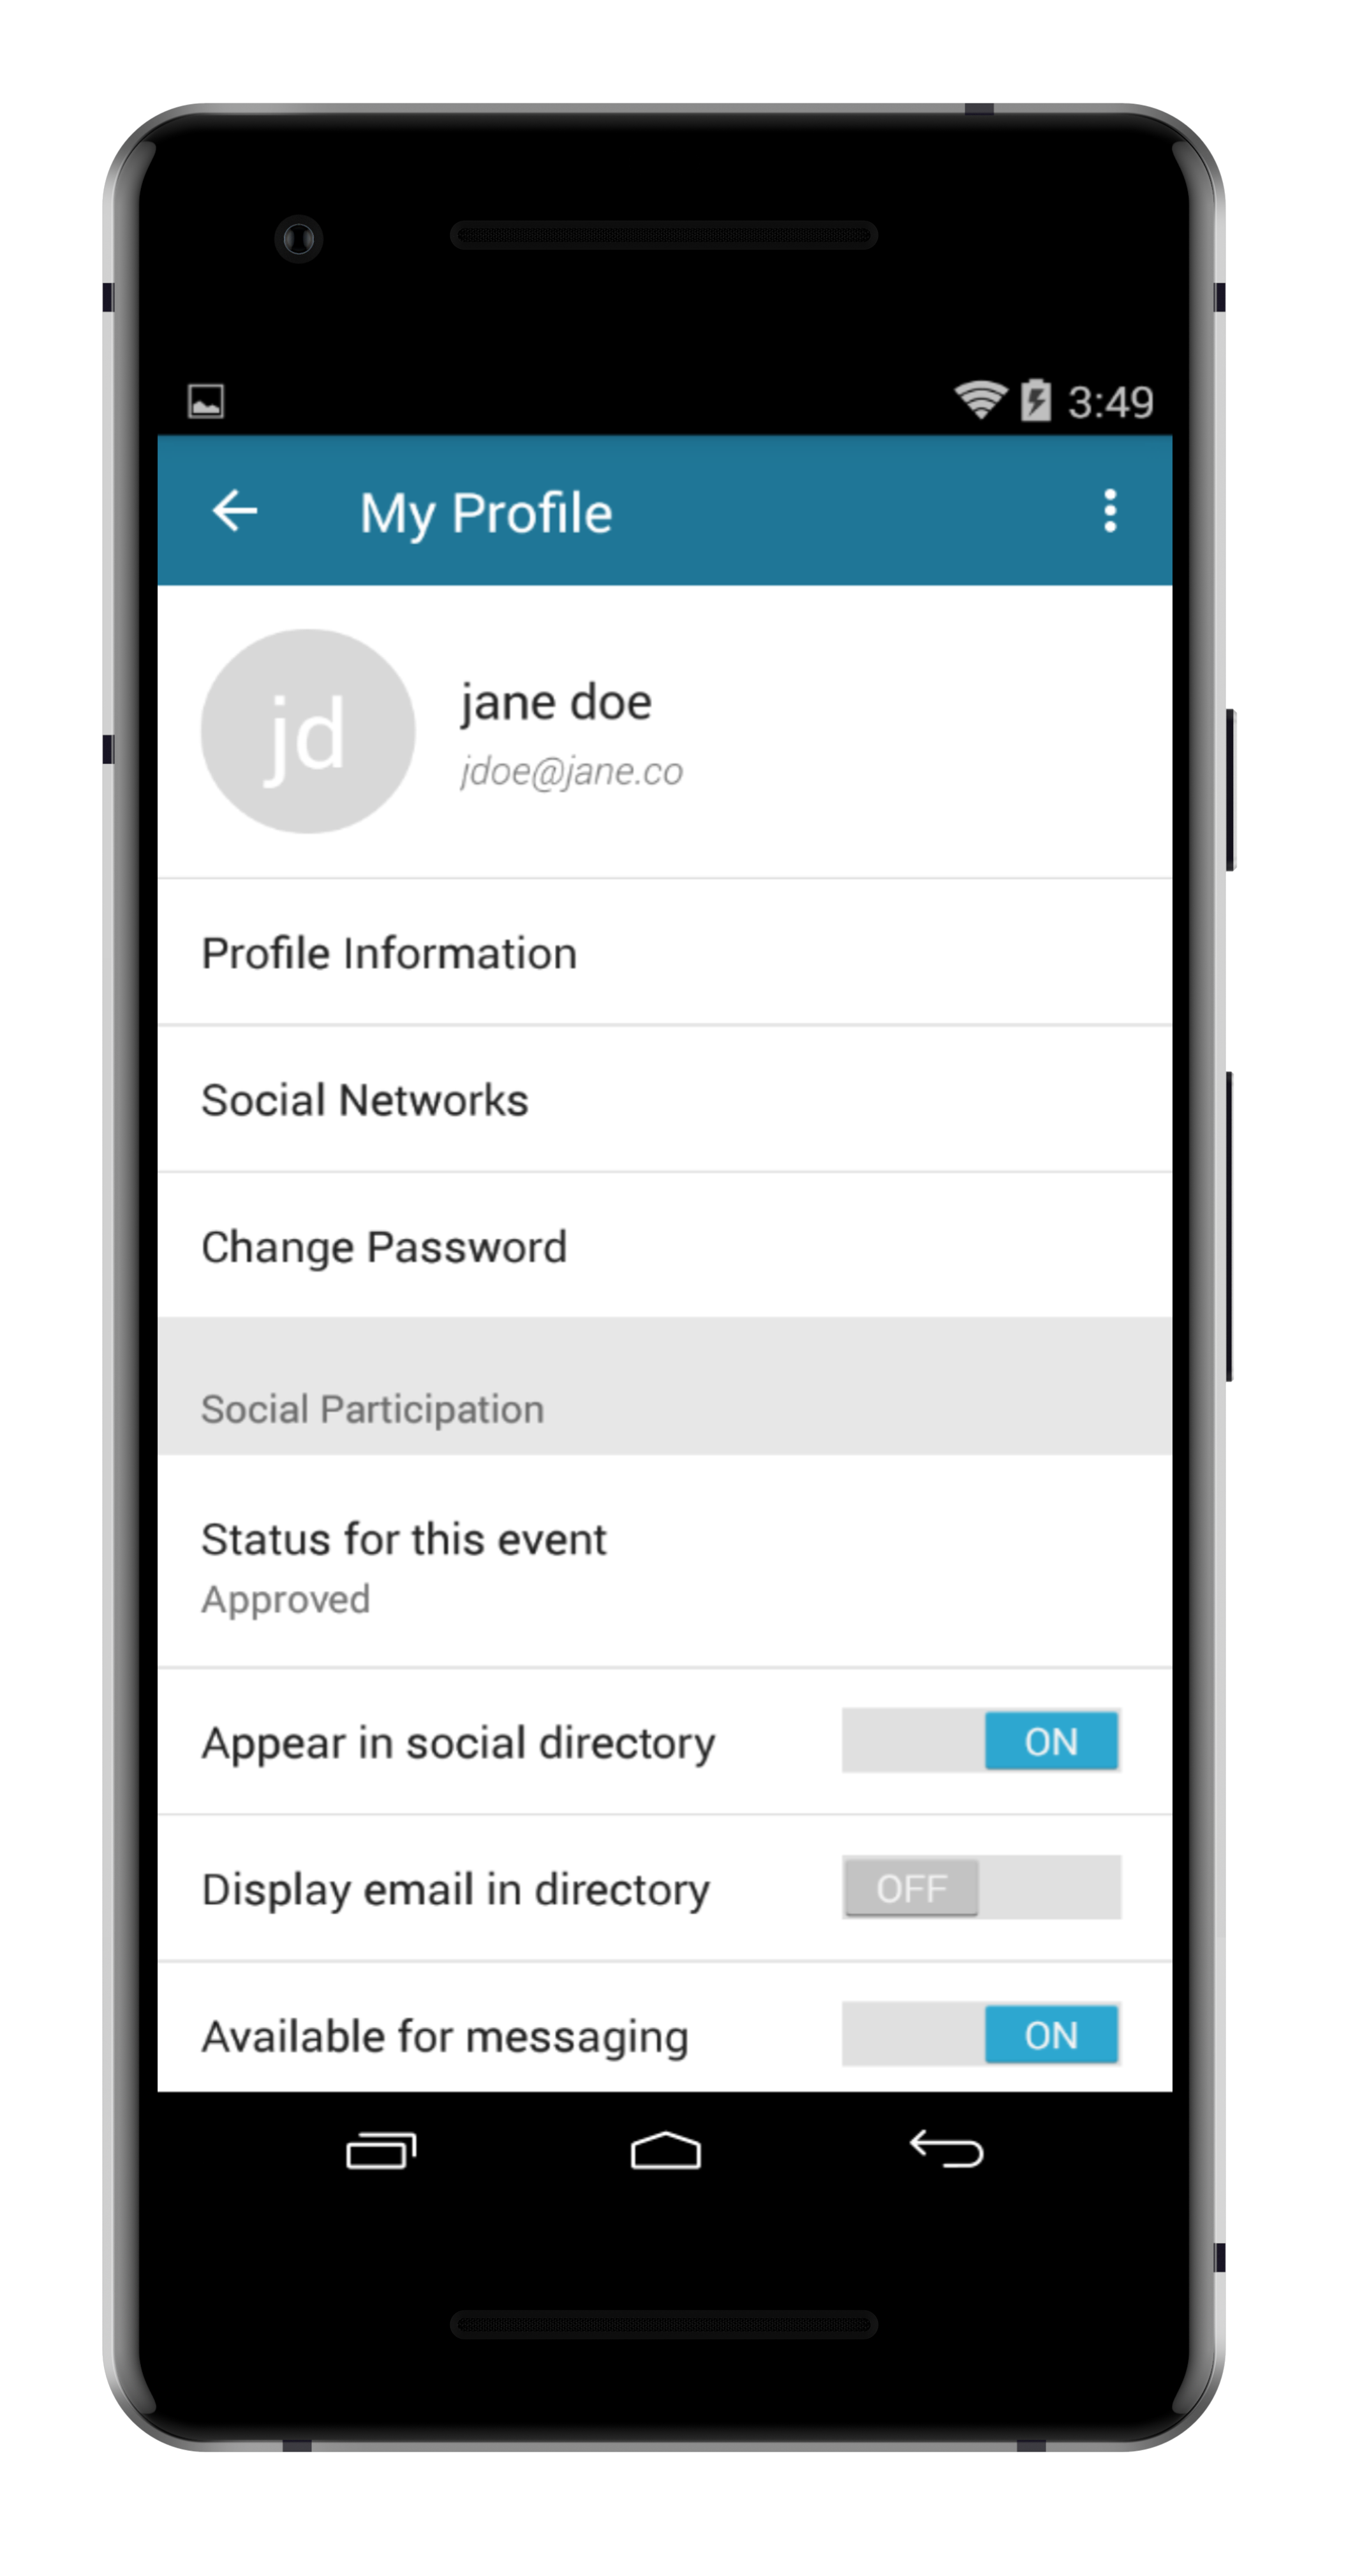 step 2. - FROM YOUR PROFILE, CLICK THE PROFILE INFORMATION TAB TO CHANGE YOUR PROFILE PICTURE (AS WELL AS YOUR BIO, CONTACT INFO, SOCIAL ENGAGEMENT AND MORE.)